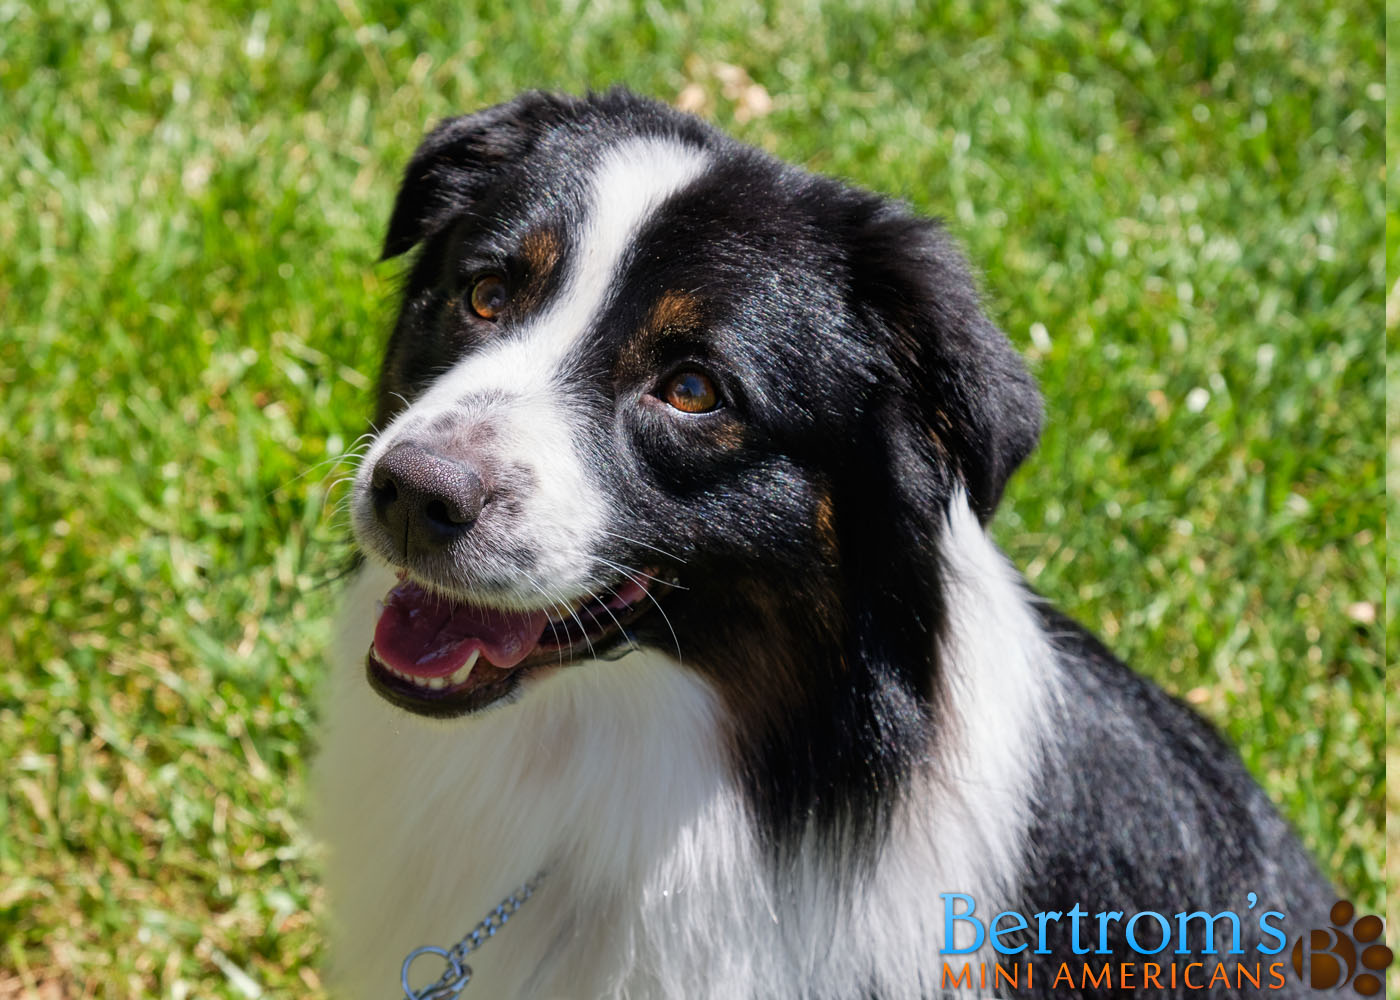 Bertrom's Up Close and Personal, Mini American Shepherd, at a park